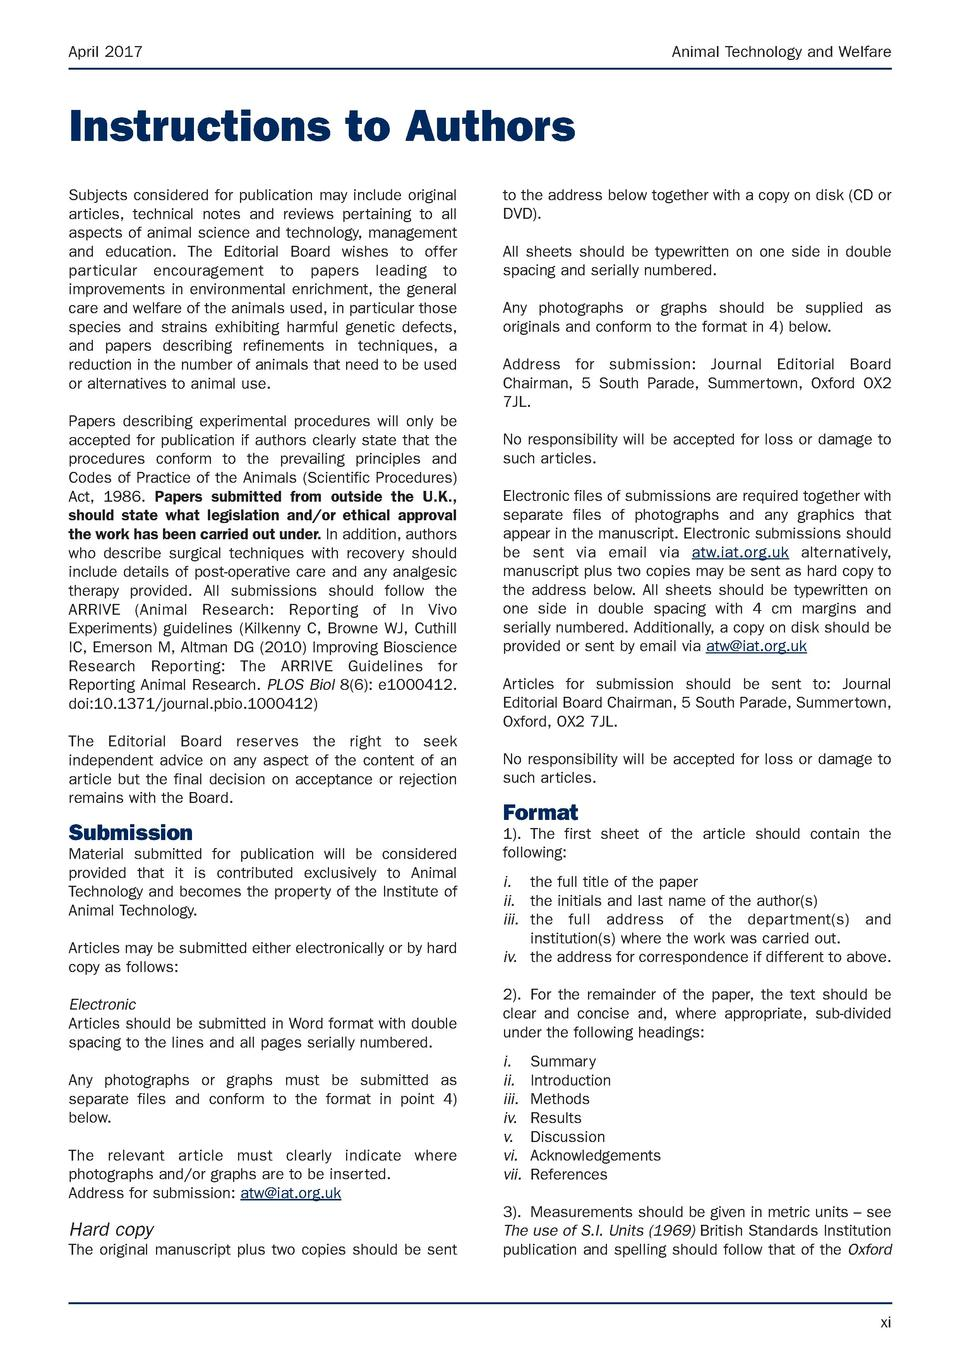 APRIL latest.e S Animal Technology and Welfare  9 3 17  07 54  Page 77  April 2017  Animal Technology and Welfare  Instruc...